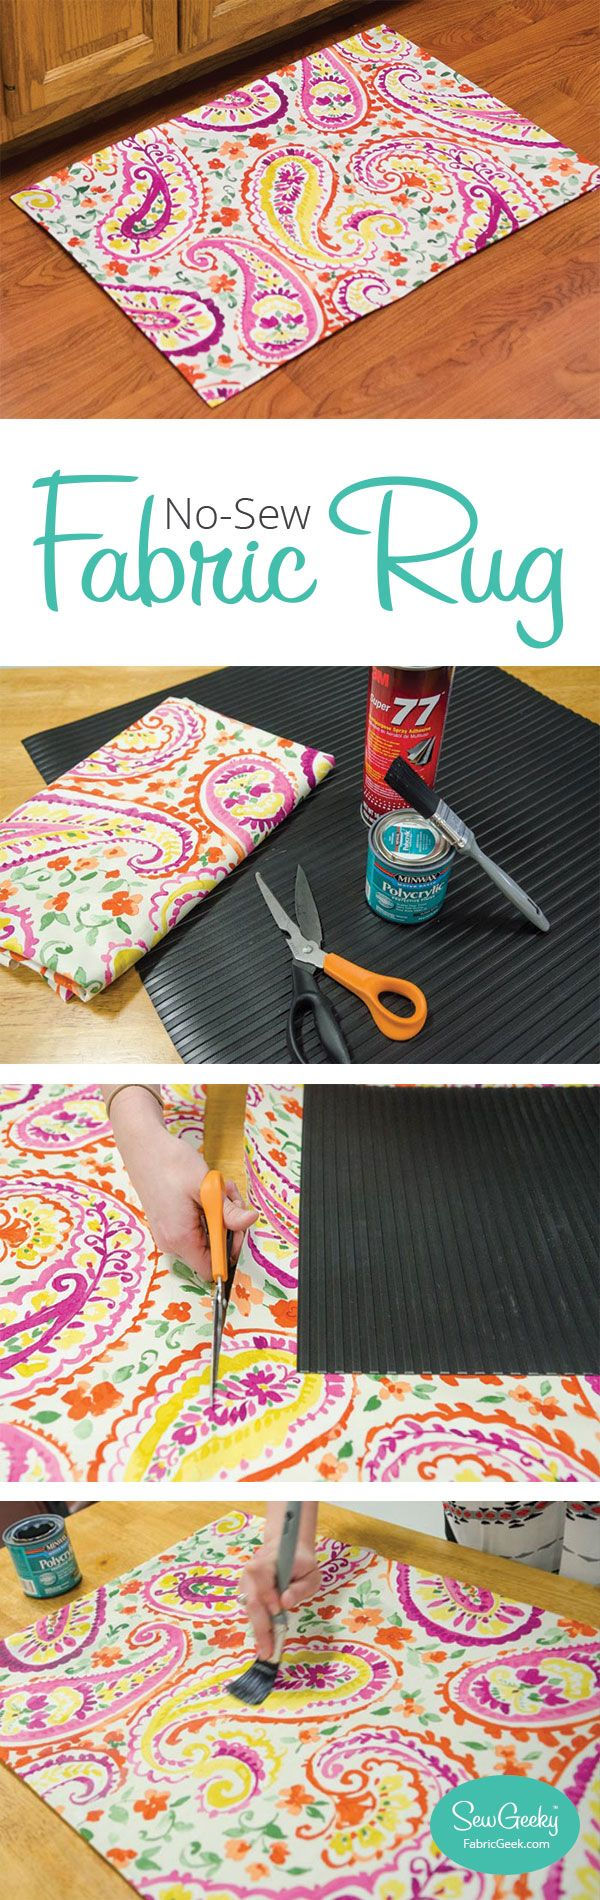 Make a no sew fabric rug in seconds. It's so easy! Give it a try. #nosew #SewGeeky #FabricGeek #fabricrug